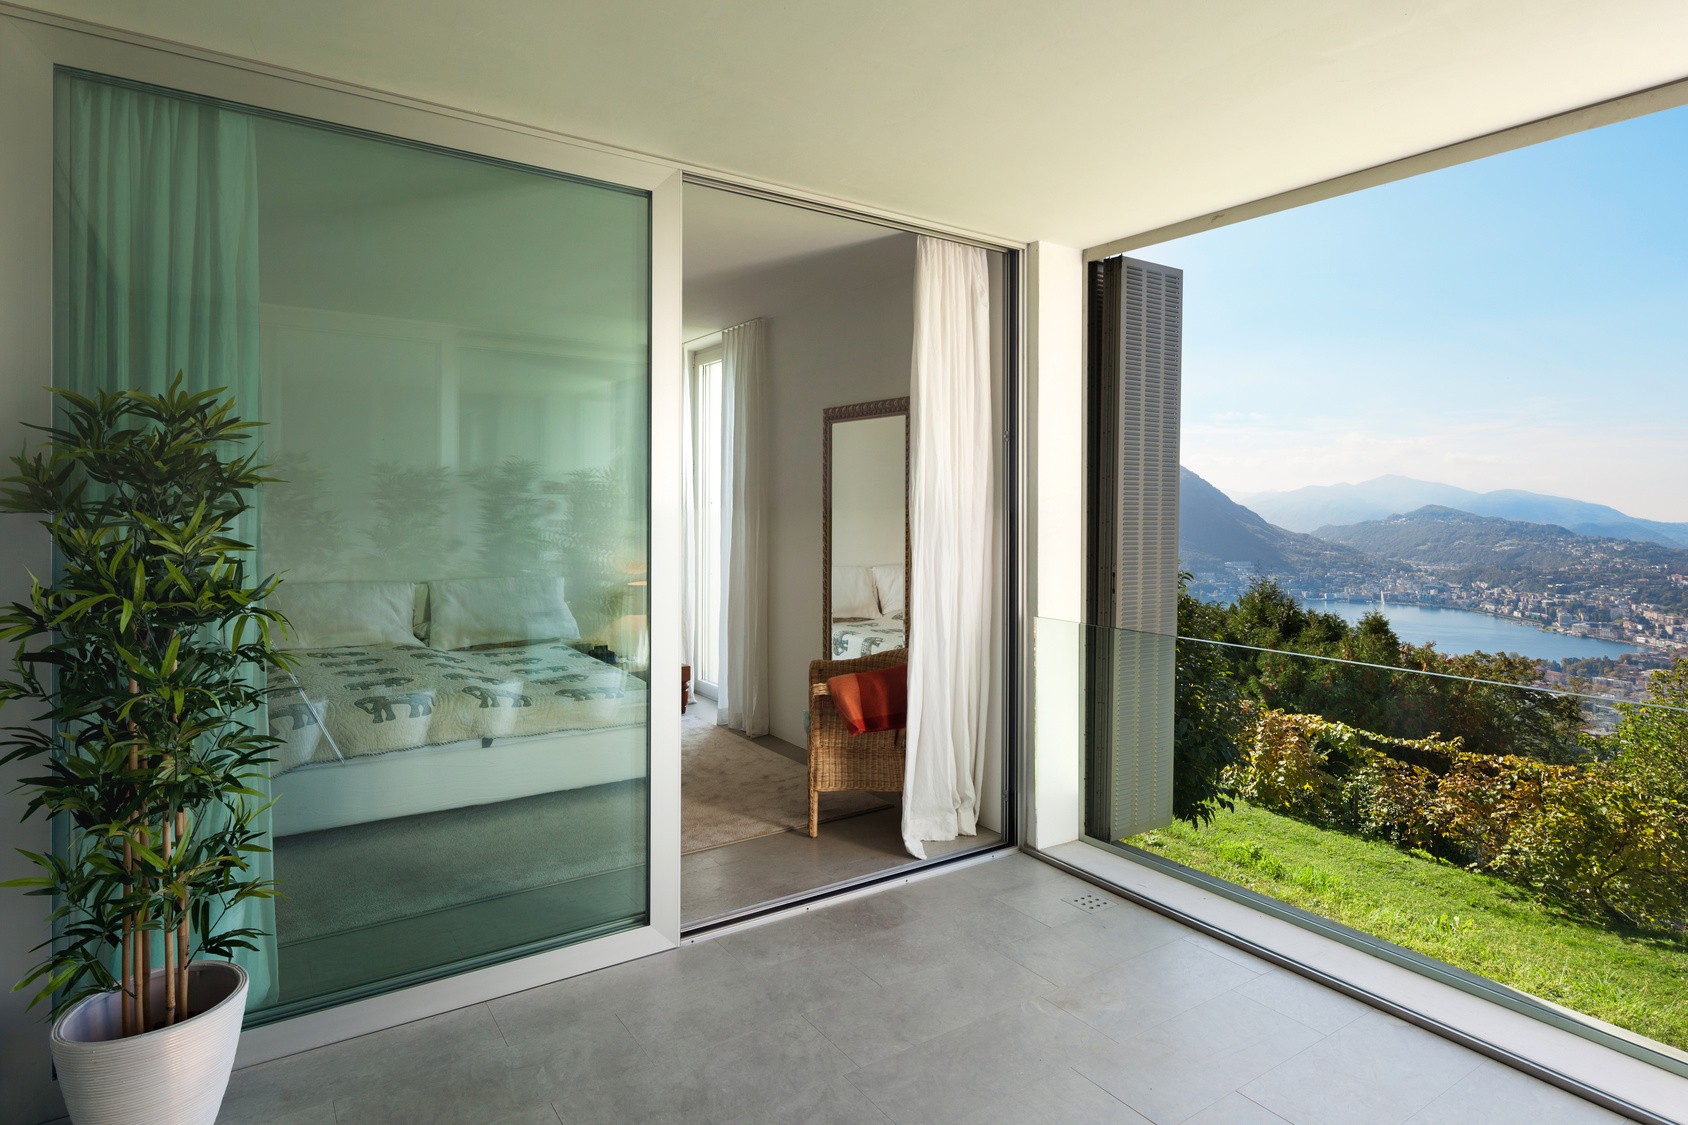 Interior of a modern house, balcony overlooking the lake